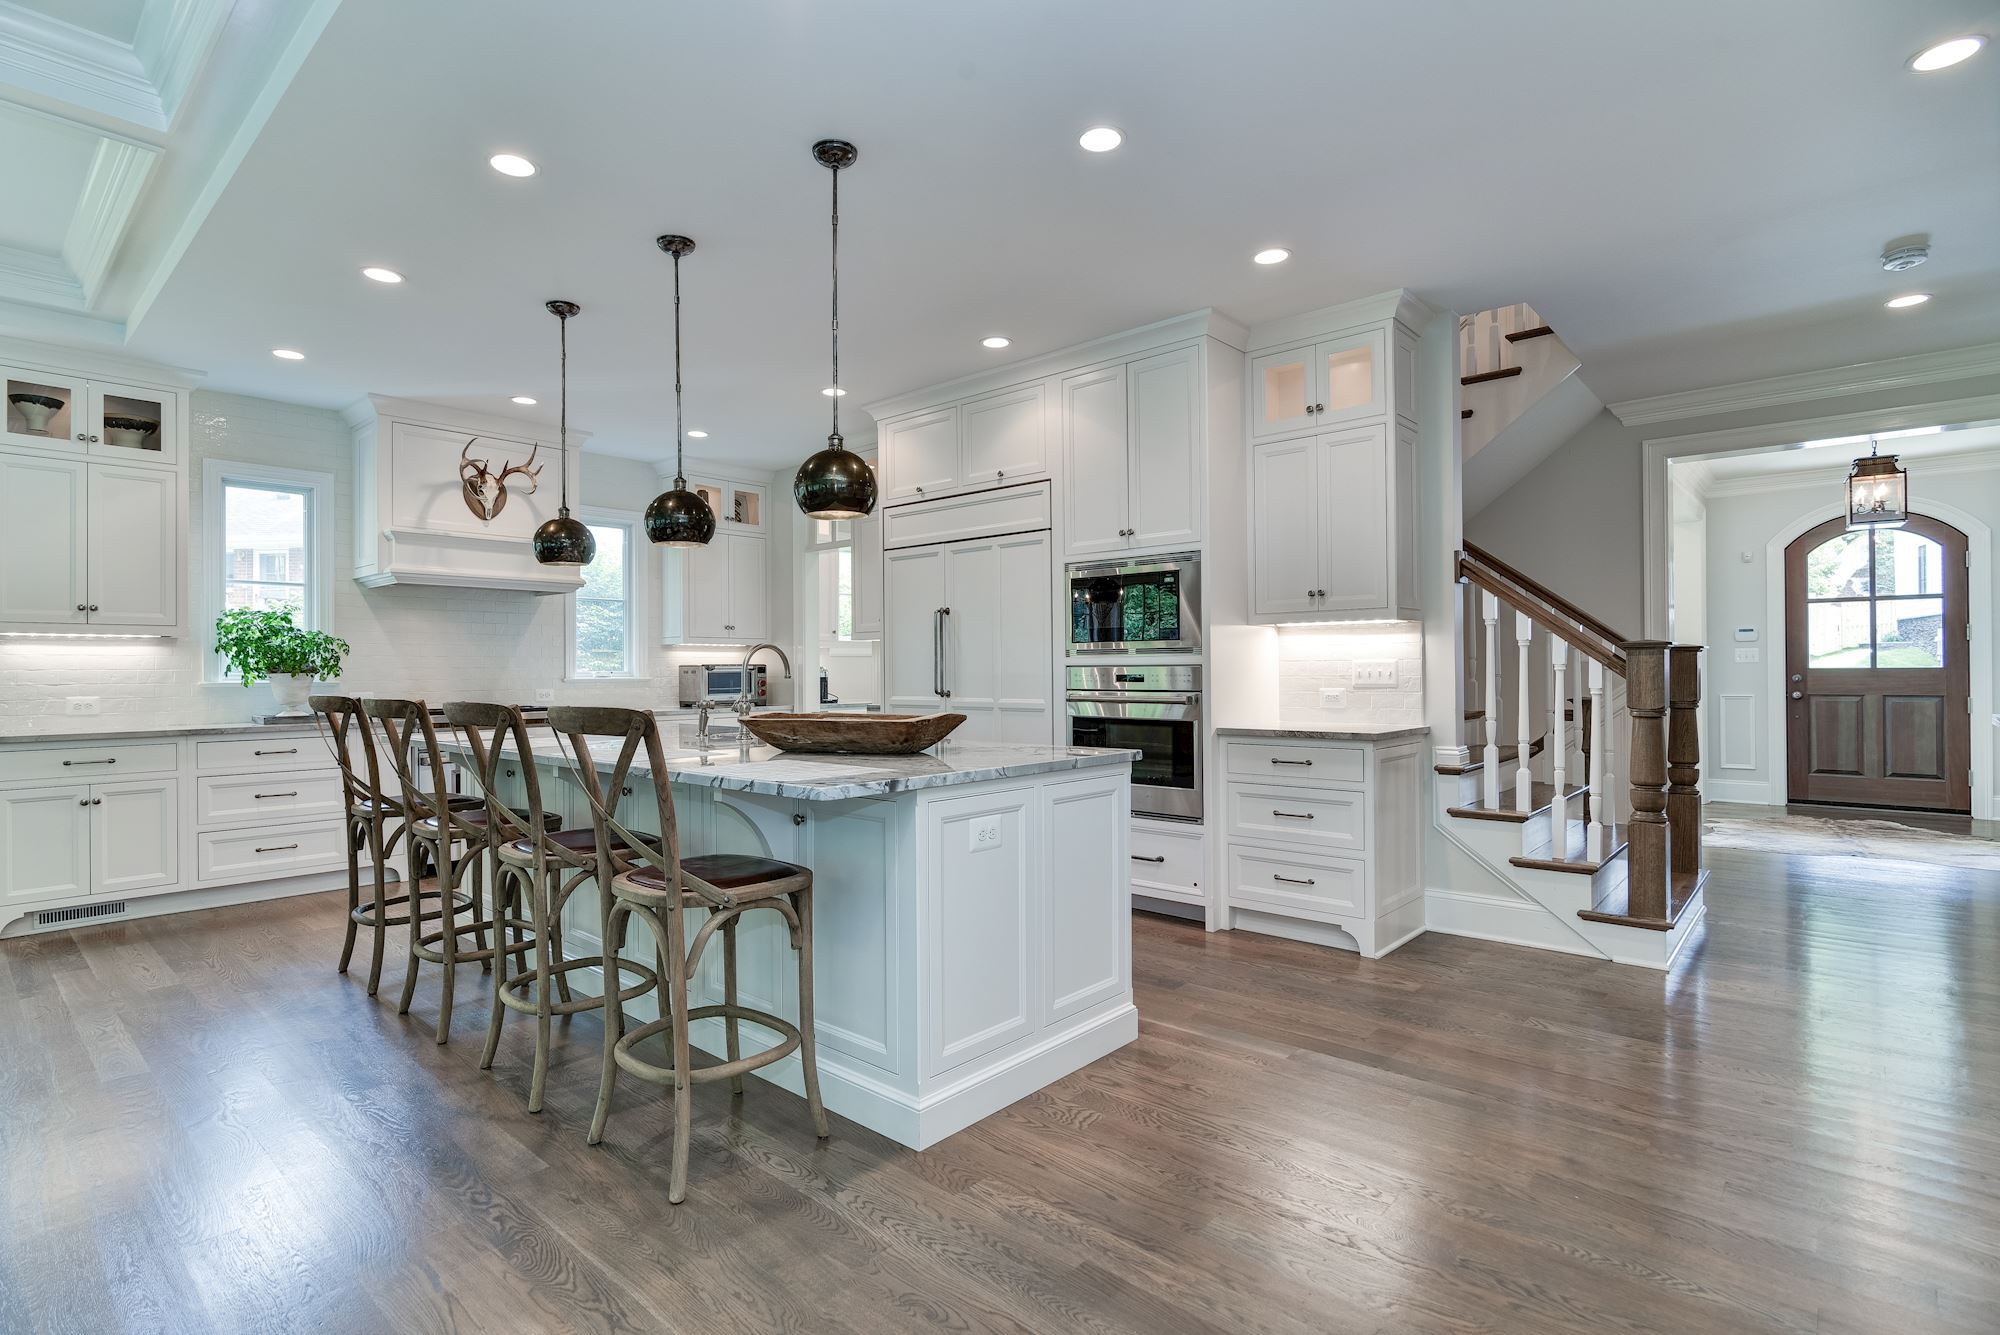 GREATJONES-35TH-KITCHEN-1.jpg